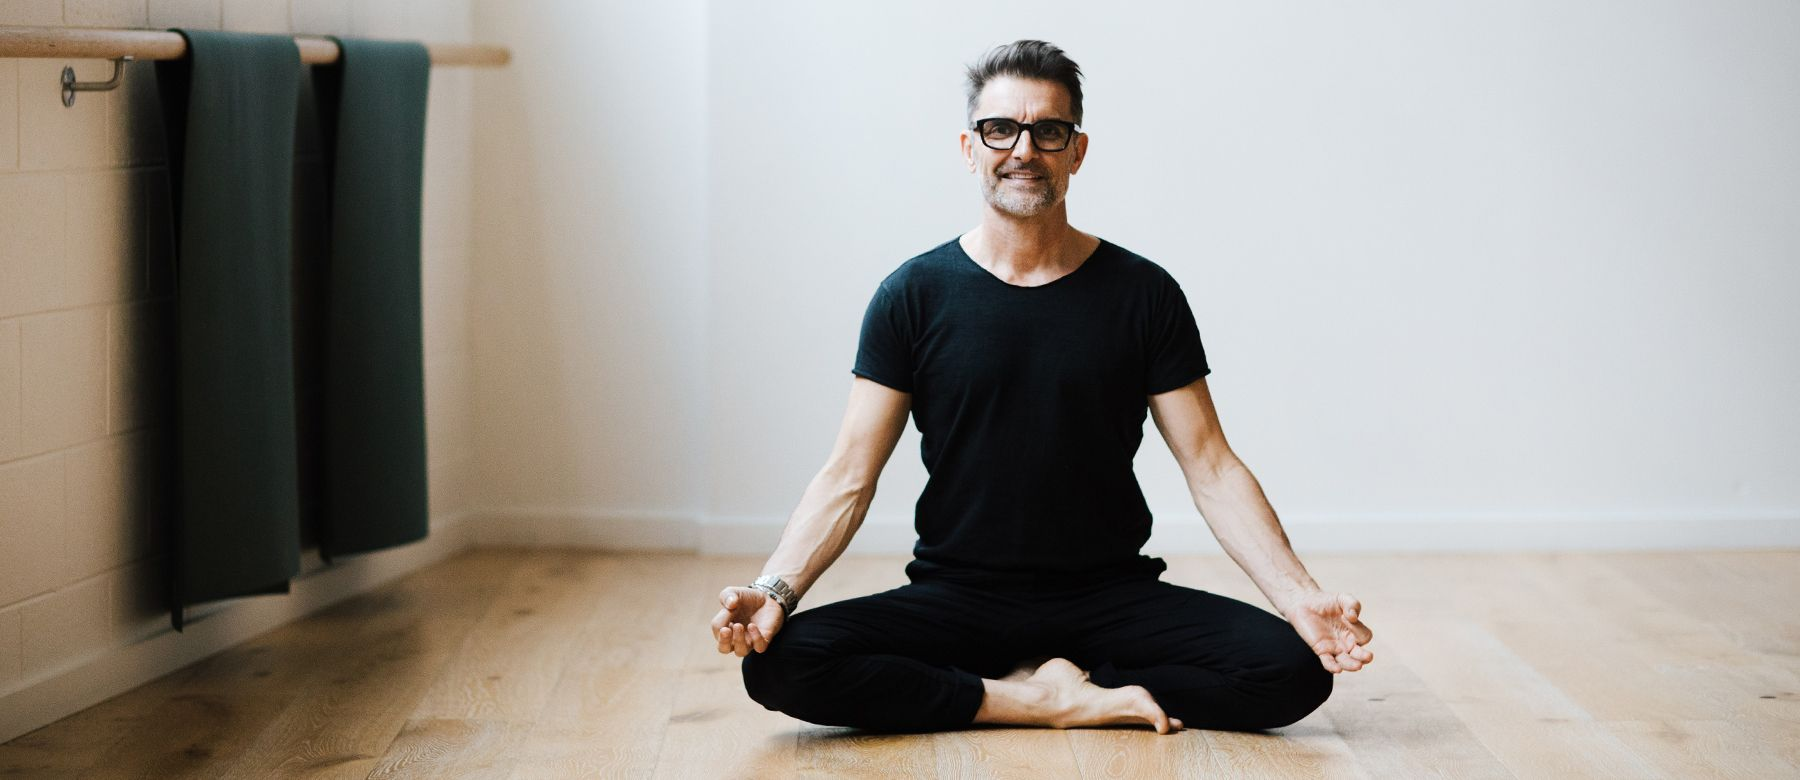 InYoga, Surry Hills - Meditation Teacher Training 50 hours ...